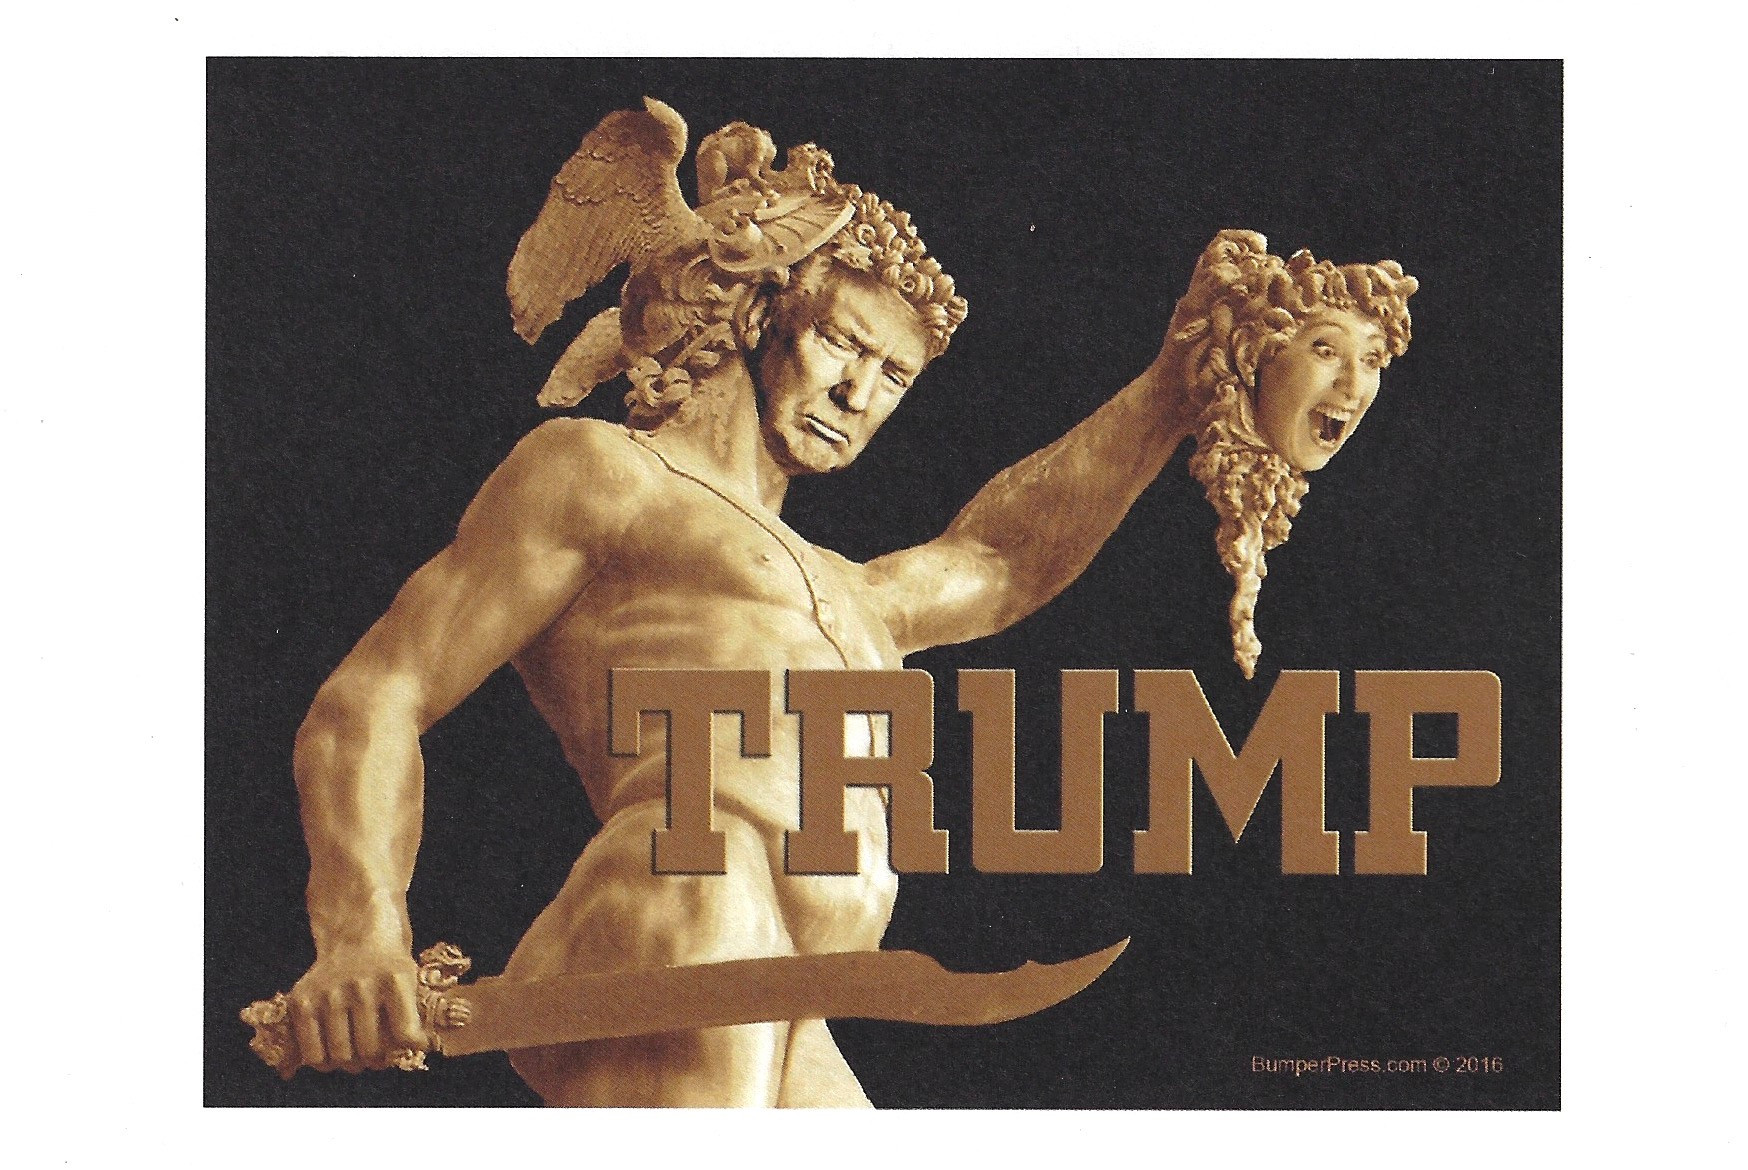 Trump as Perseus and Decapitated Hillary as Medusa